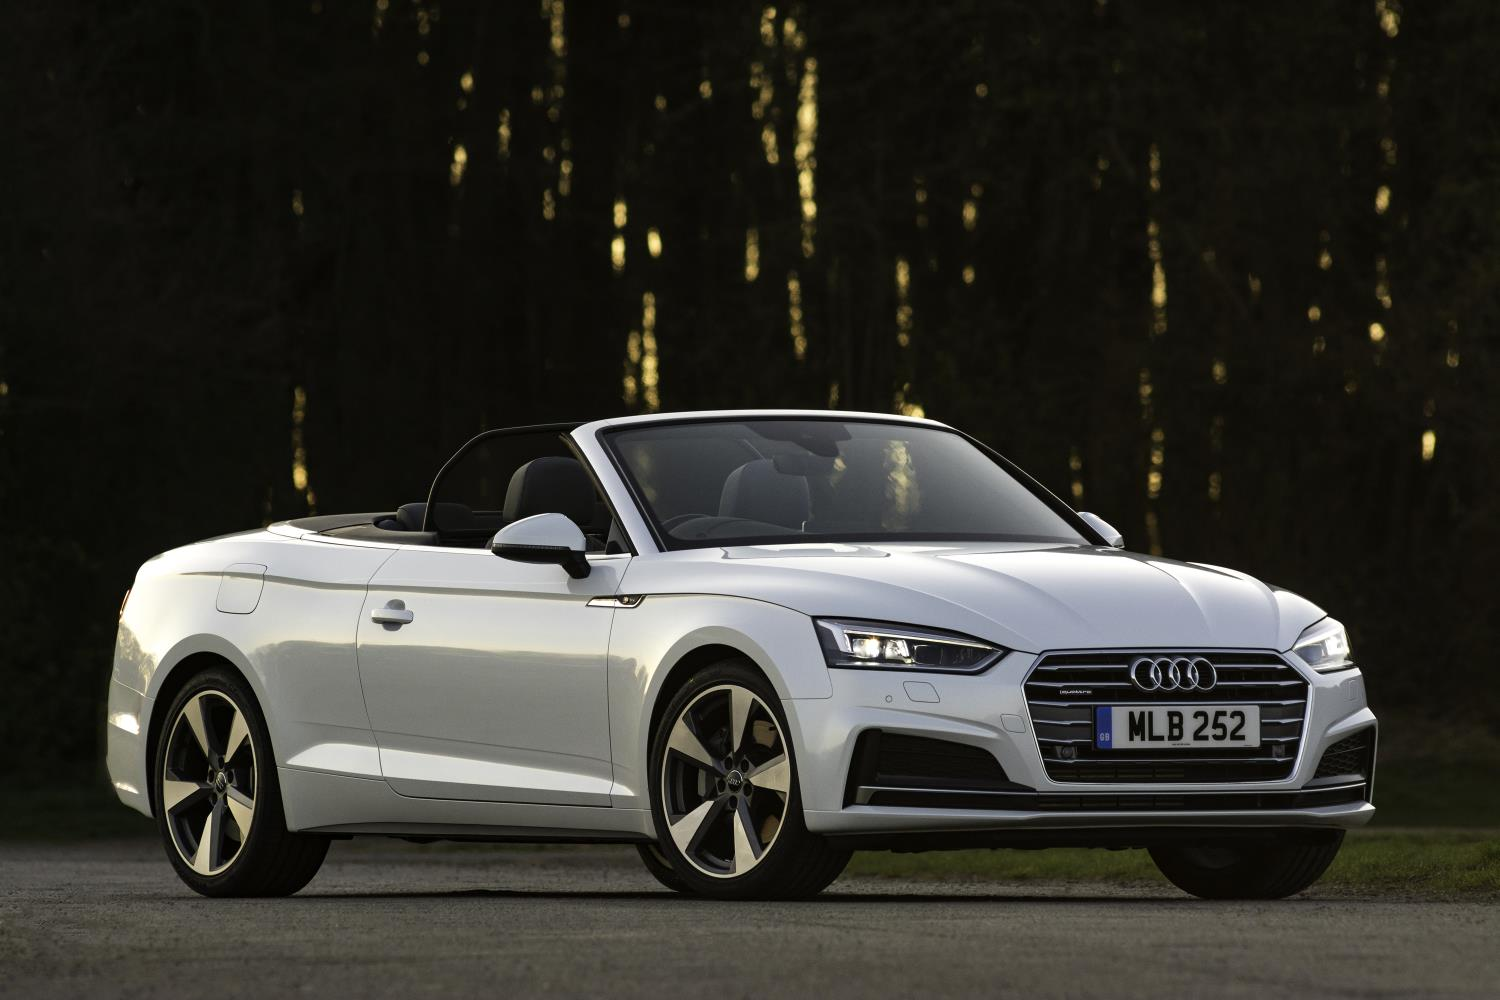 White Audi A5 Cabriolet stationary with the roof down at dusk